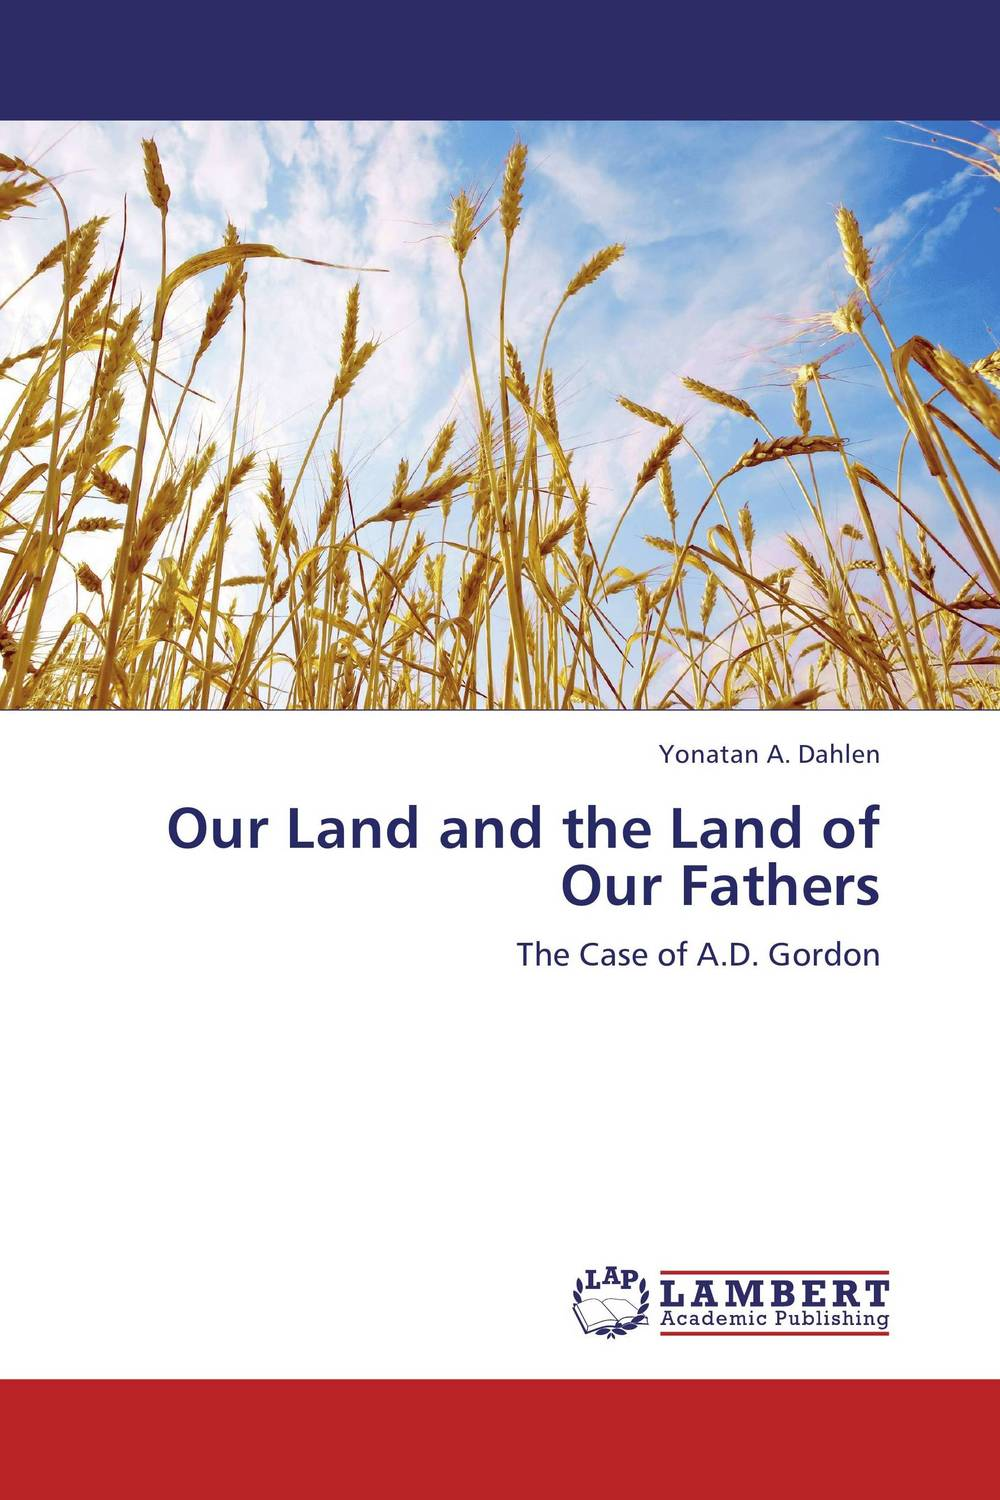 Our Land and the Land of Our Fathers land of savagery land of promise – the european image of the american